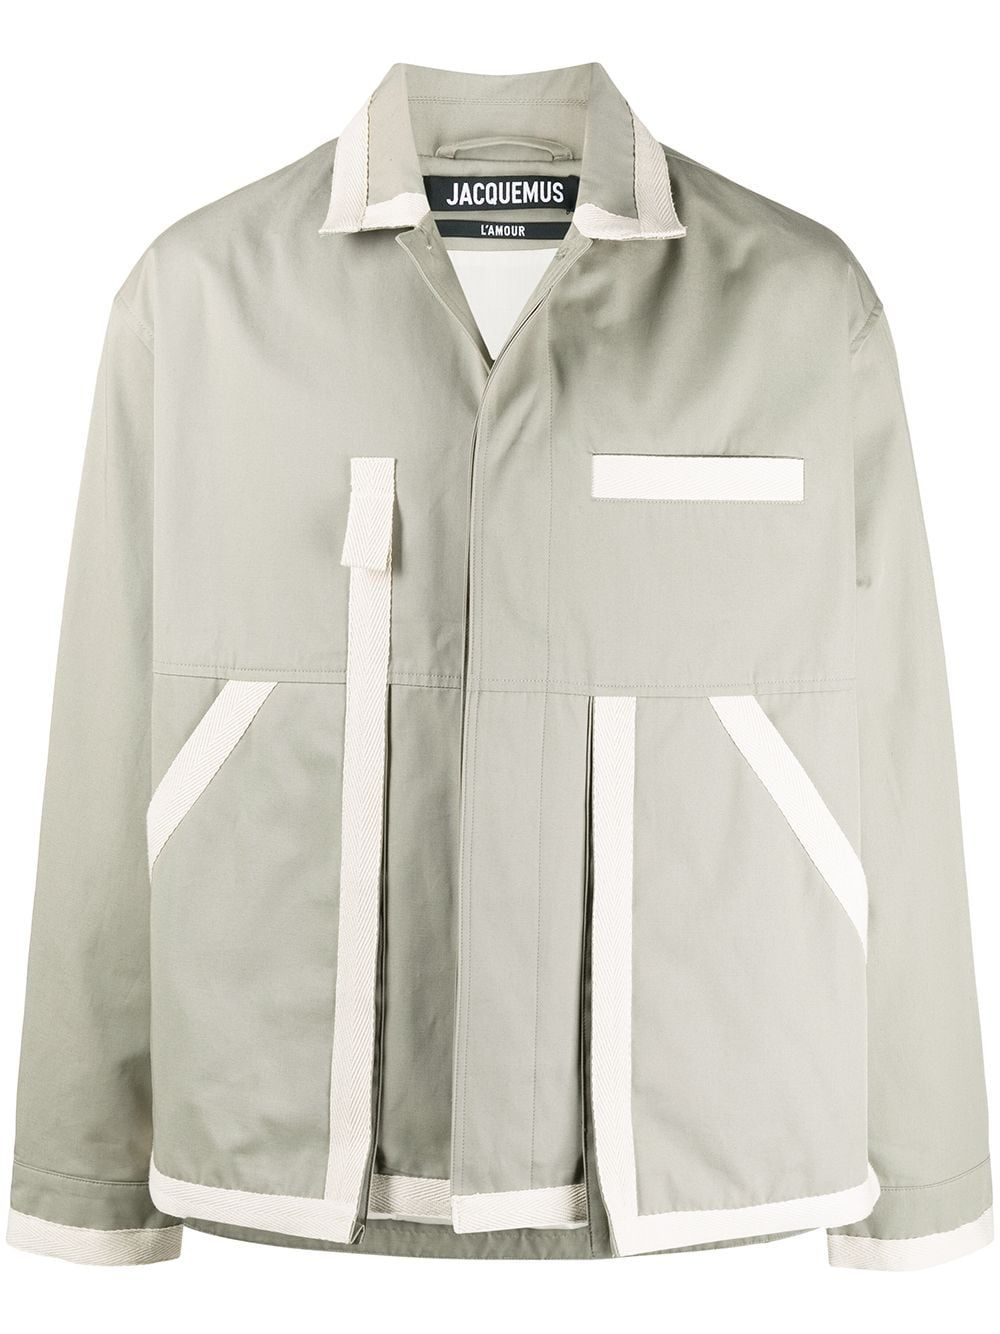 Jacquemus Cottons JACQUEMUS MEN'S GREEN COTTON JACKET